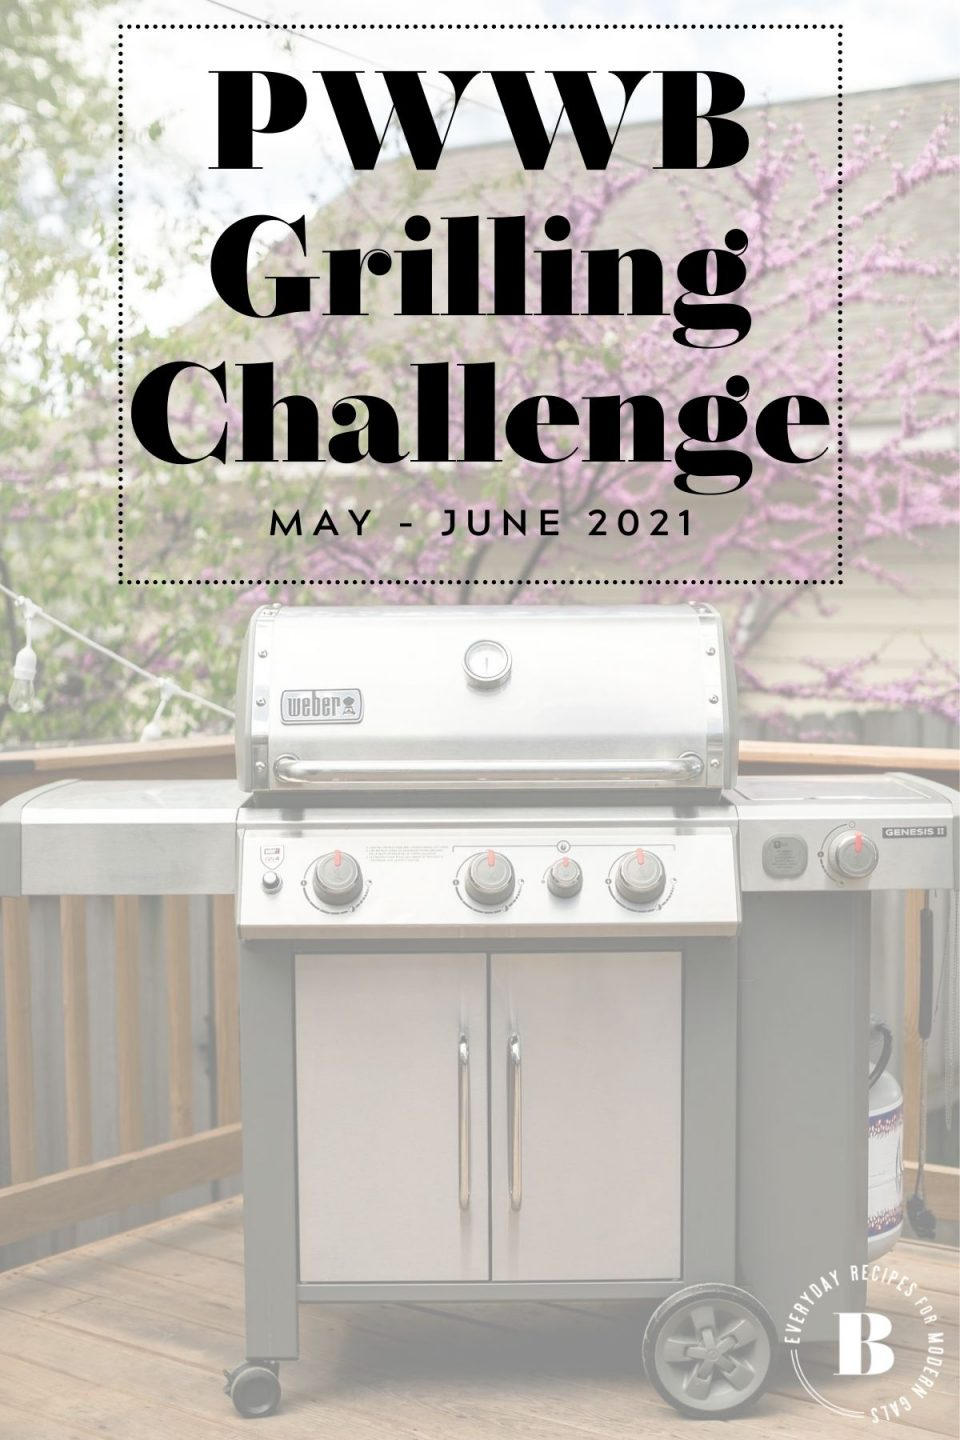 PWWB Grilling Series Challenge Graphic featuring a Weber Genesis II Grill.